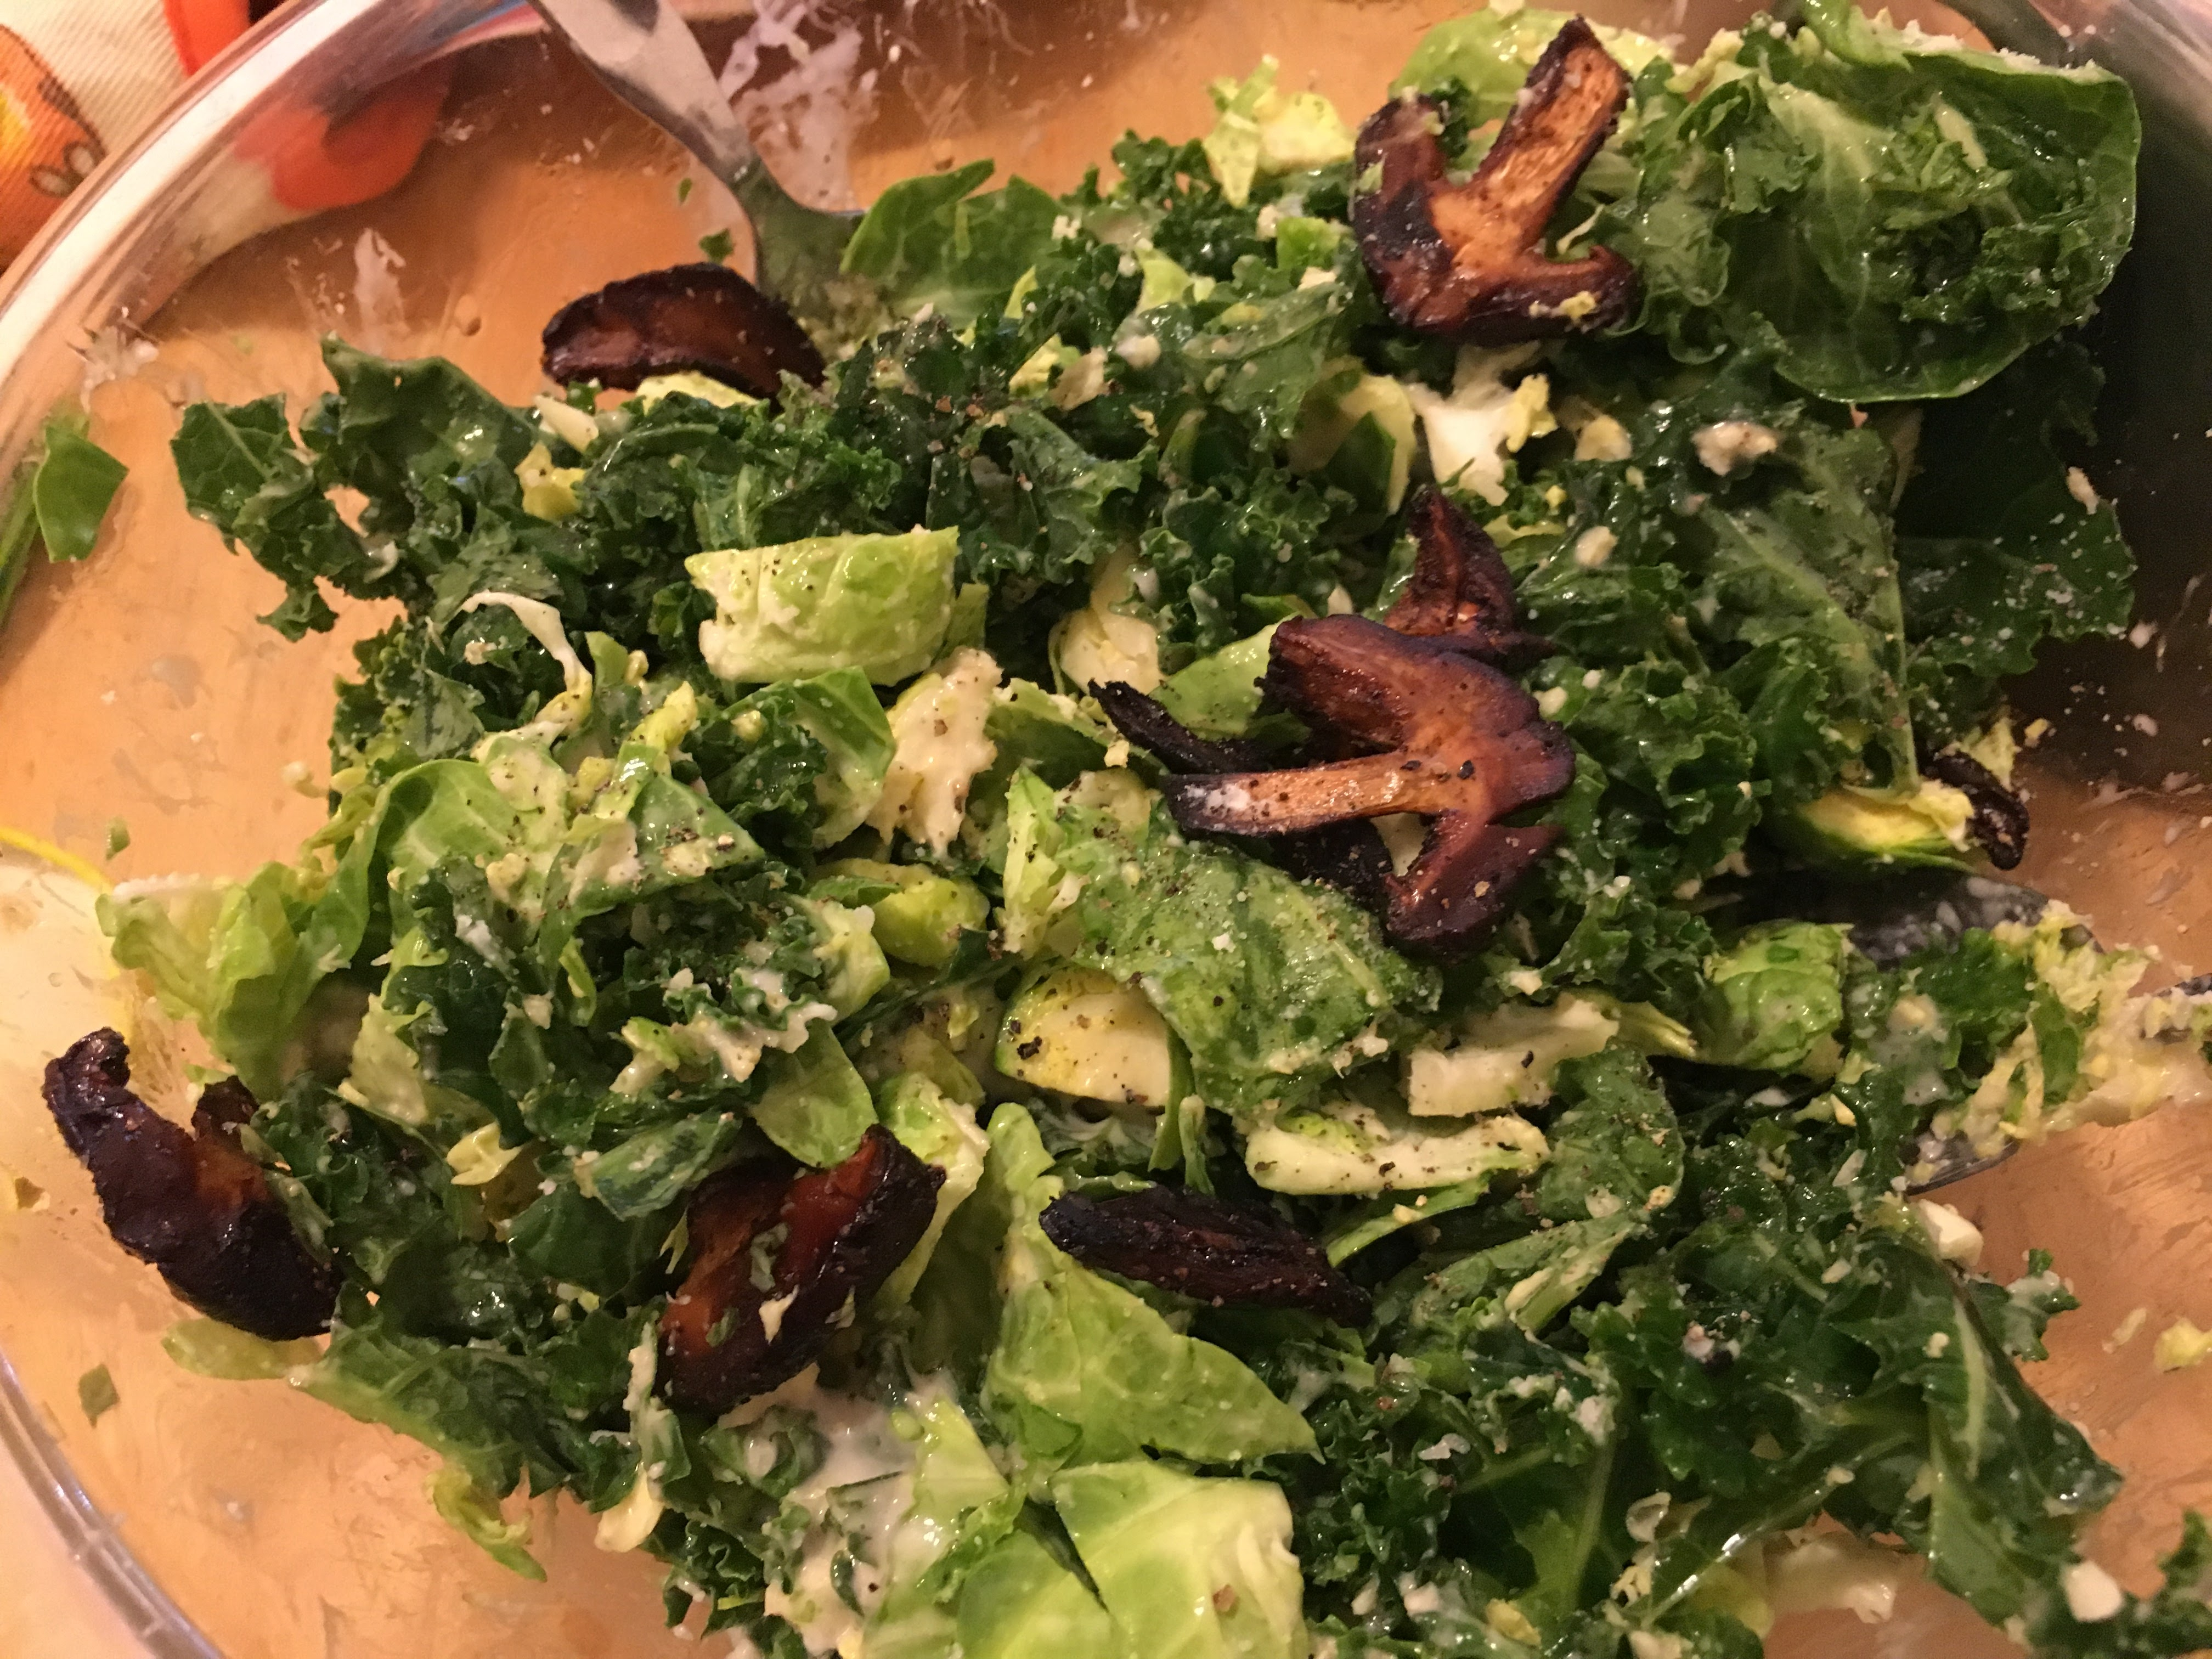 Kale & Brussel Sprouts Salad with Shiitake Mushroom Bacon